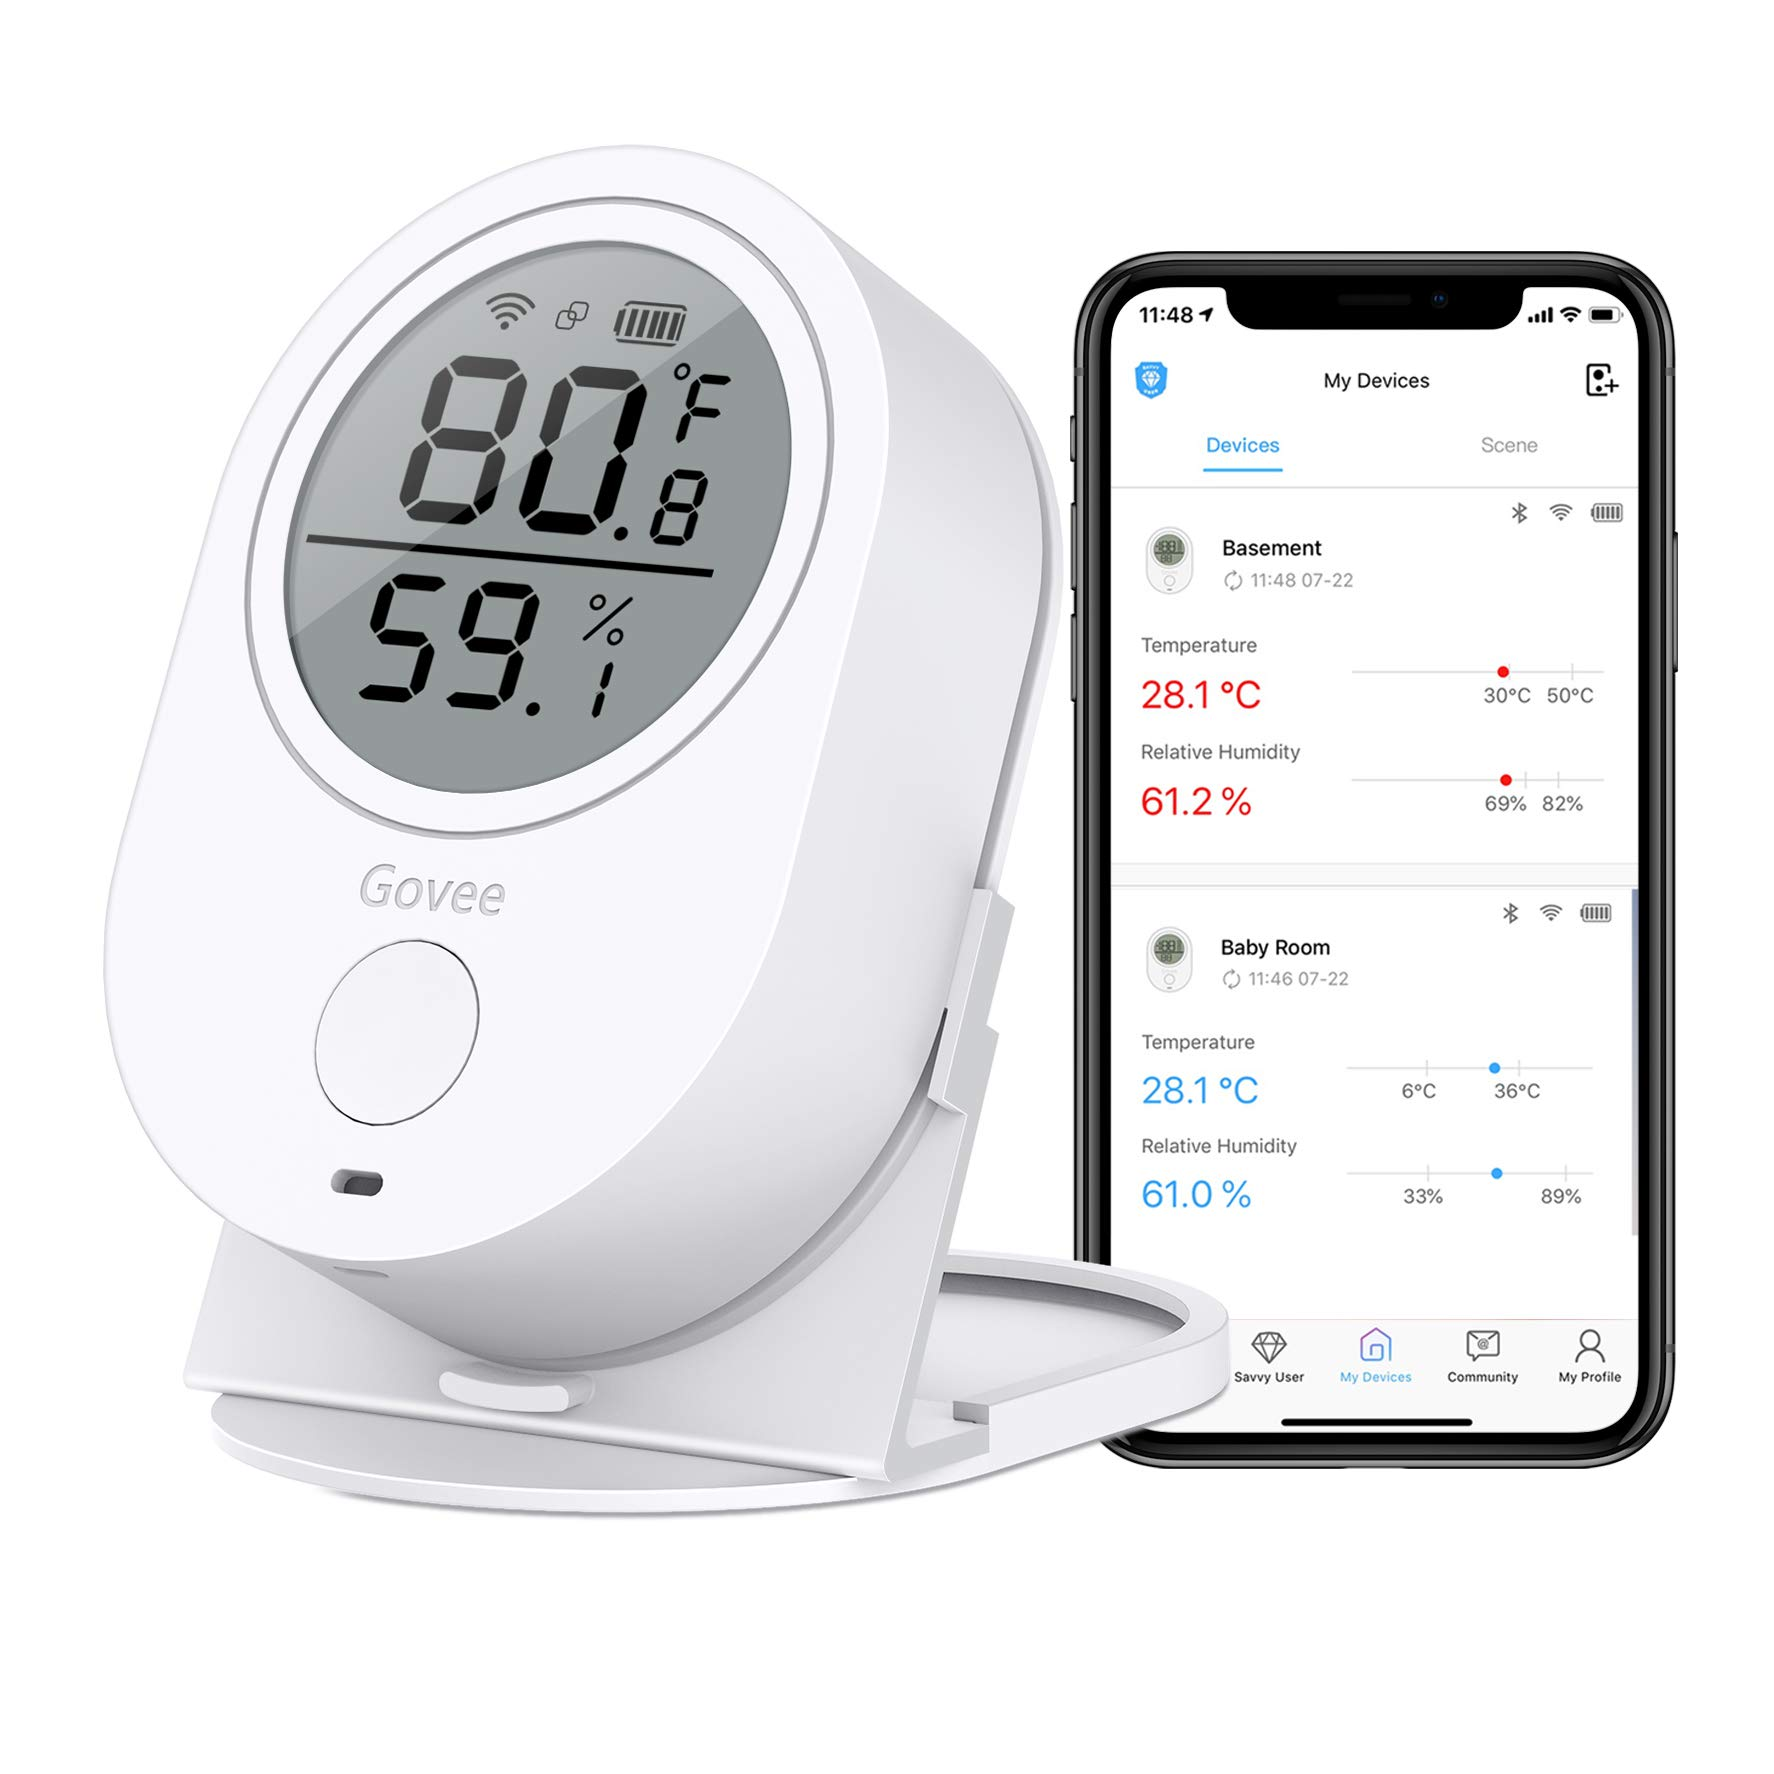 Govee WiFi Temperature Humidity Monitor, Wireless Digital Indoor Hygrometer Thermometer with App Alerts, Temperature Sensor Humidity Gauge for Home Pet Garage Cigar Humidor [Don't Support 5G WiFi]